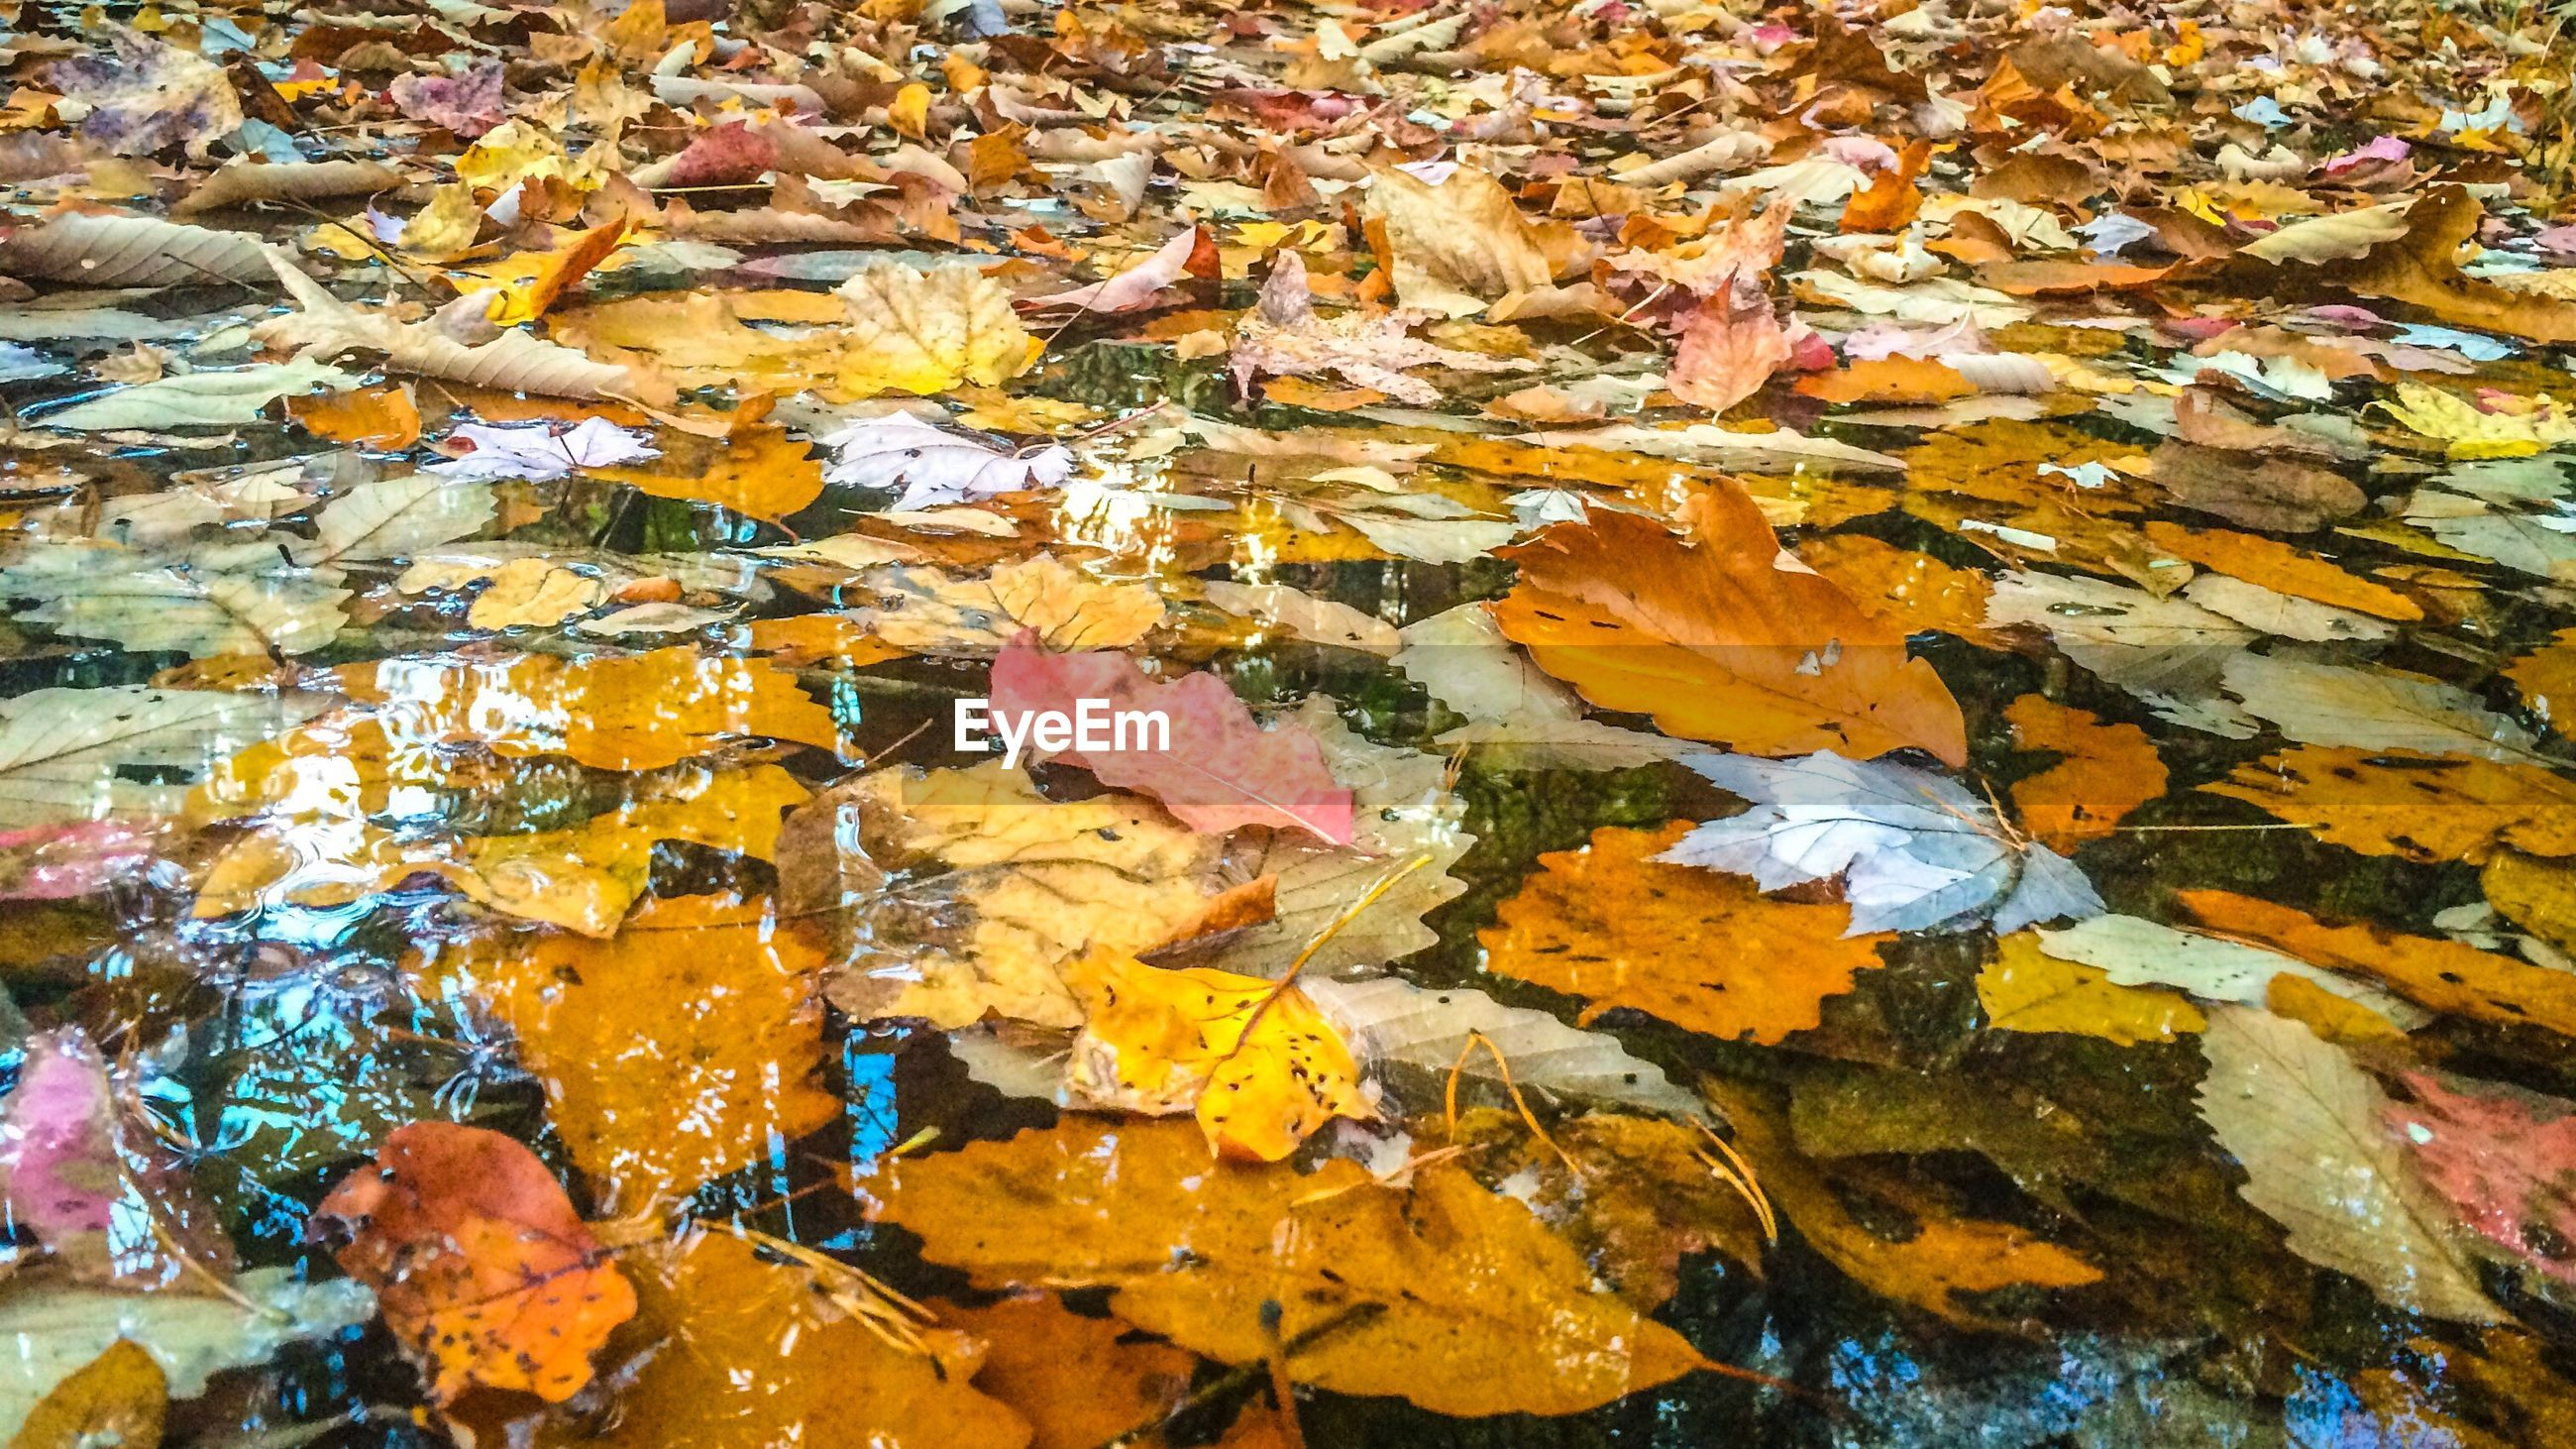 autumn, leaf, change, nature, backgrounds, full frame, close-up, no people, high angle view, fragility, day, outdoors, maple leaf, yellow, leaves, beauty in nature, tree, water, maple